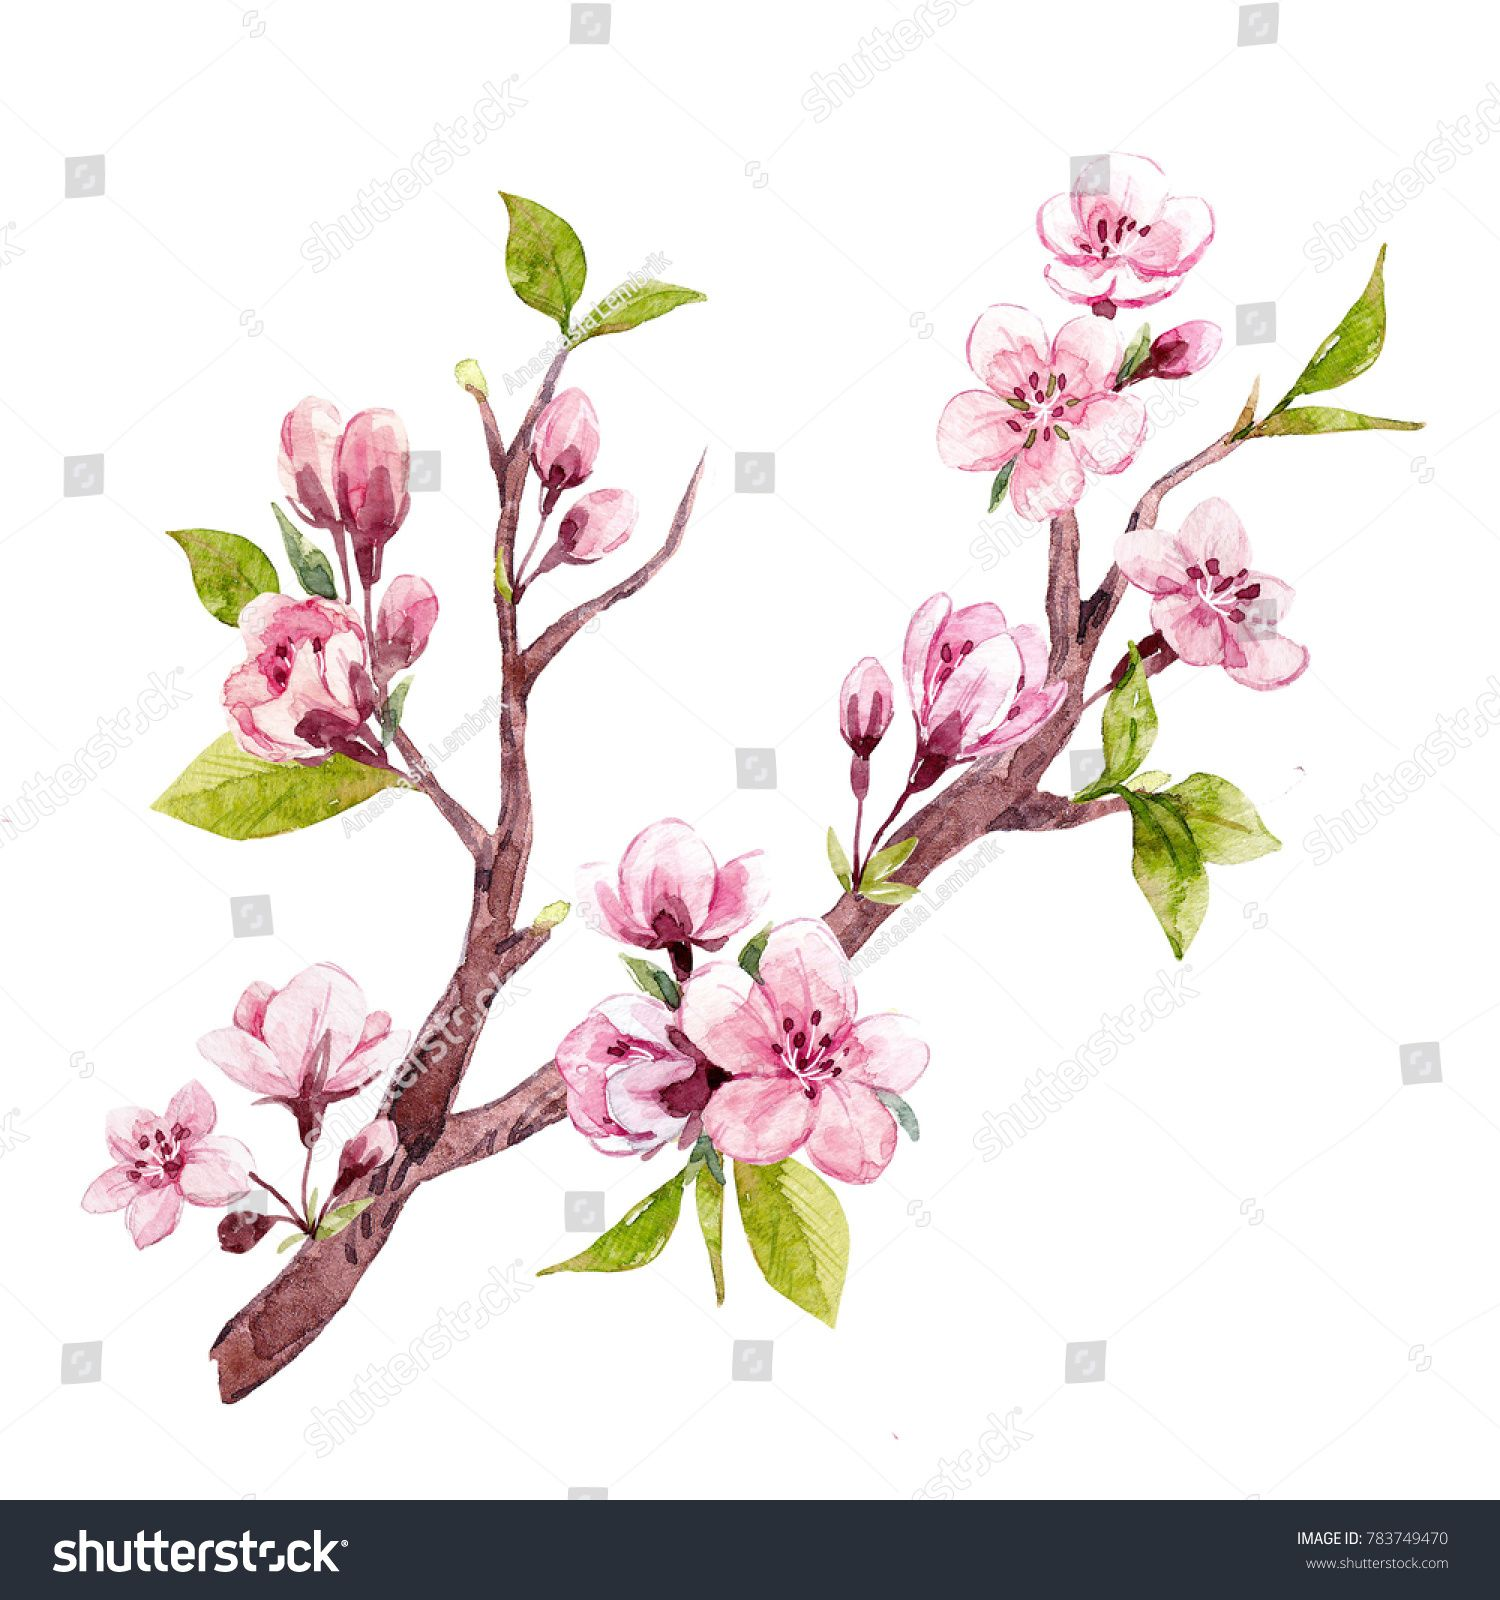 Watercolor Drawing Isolated Tree Branches With Sakura Flowers Cherry Blossoms And Young Green Leaves Set Isola Flower Drawing Leaf Drawing Watercolor Drawing